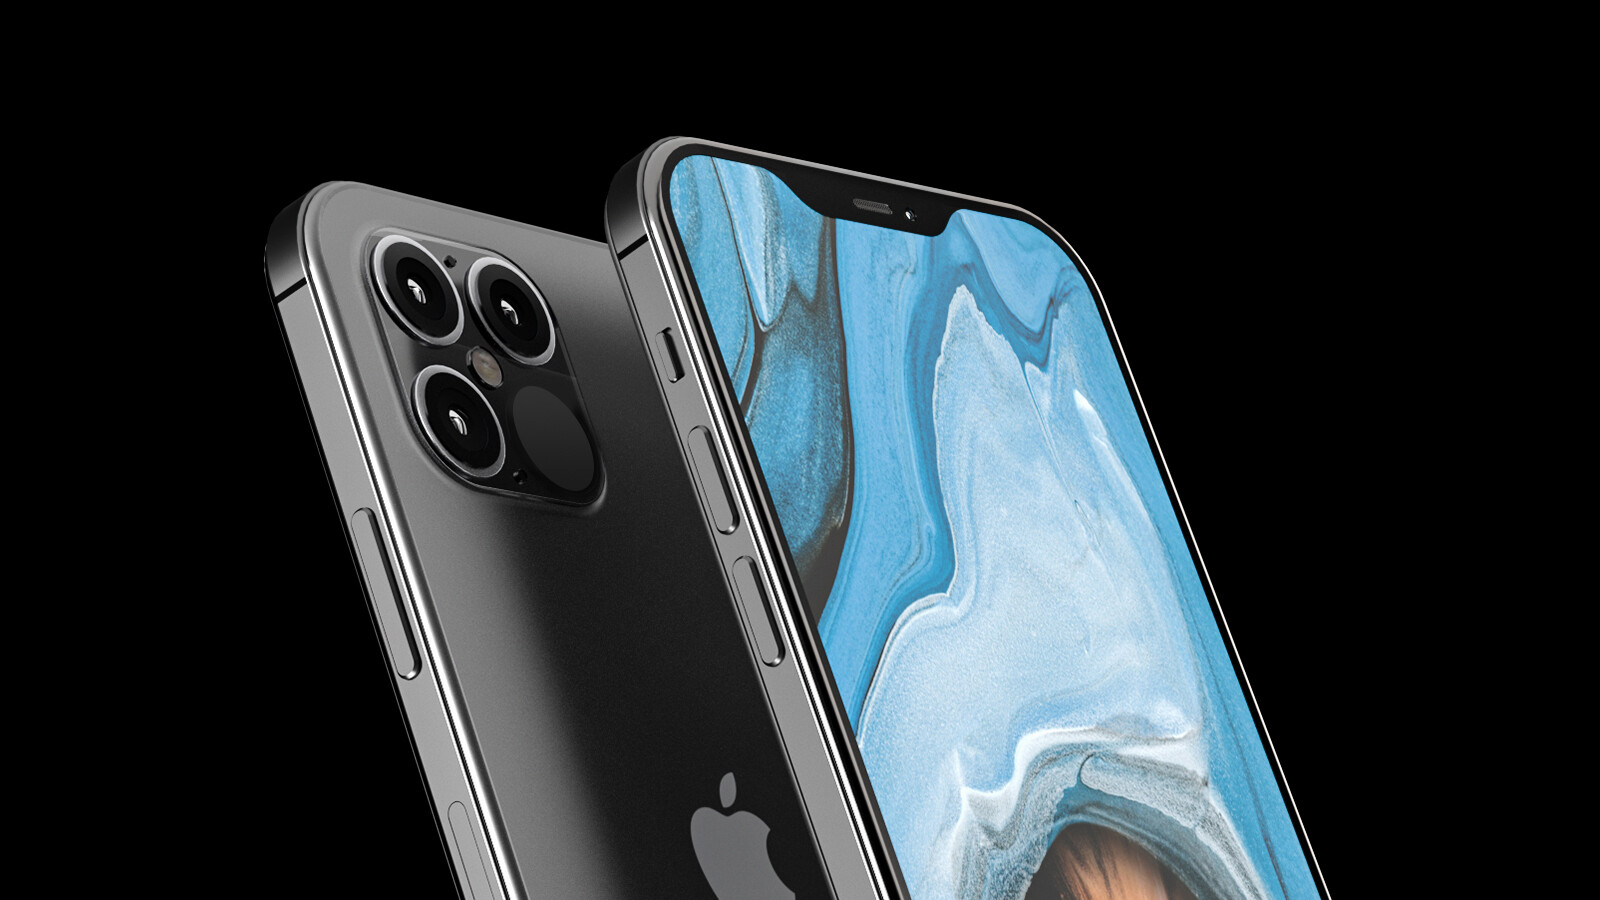 Apple may announce iPhone 12 5G series in September, delay Pro Max ...